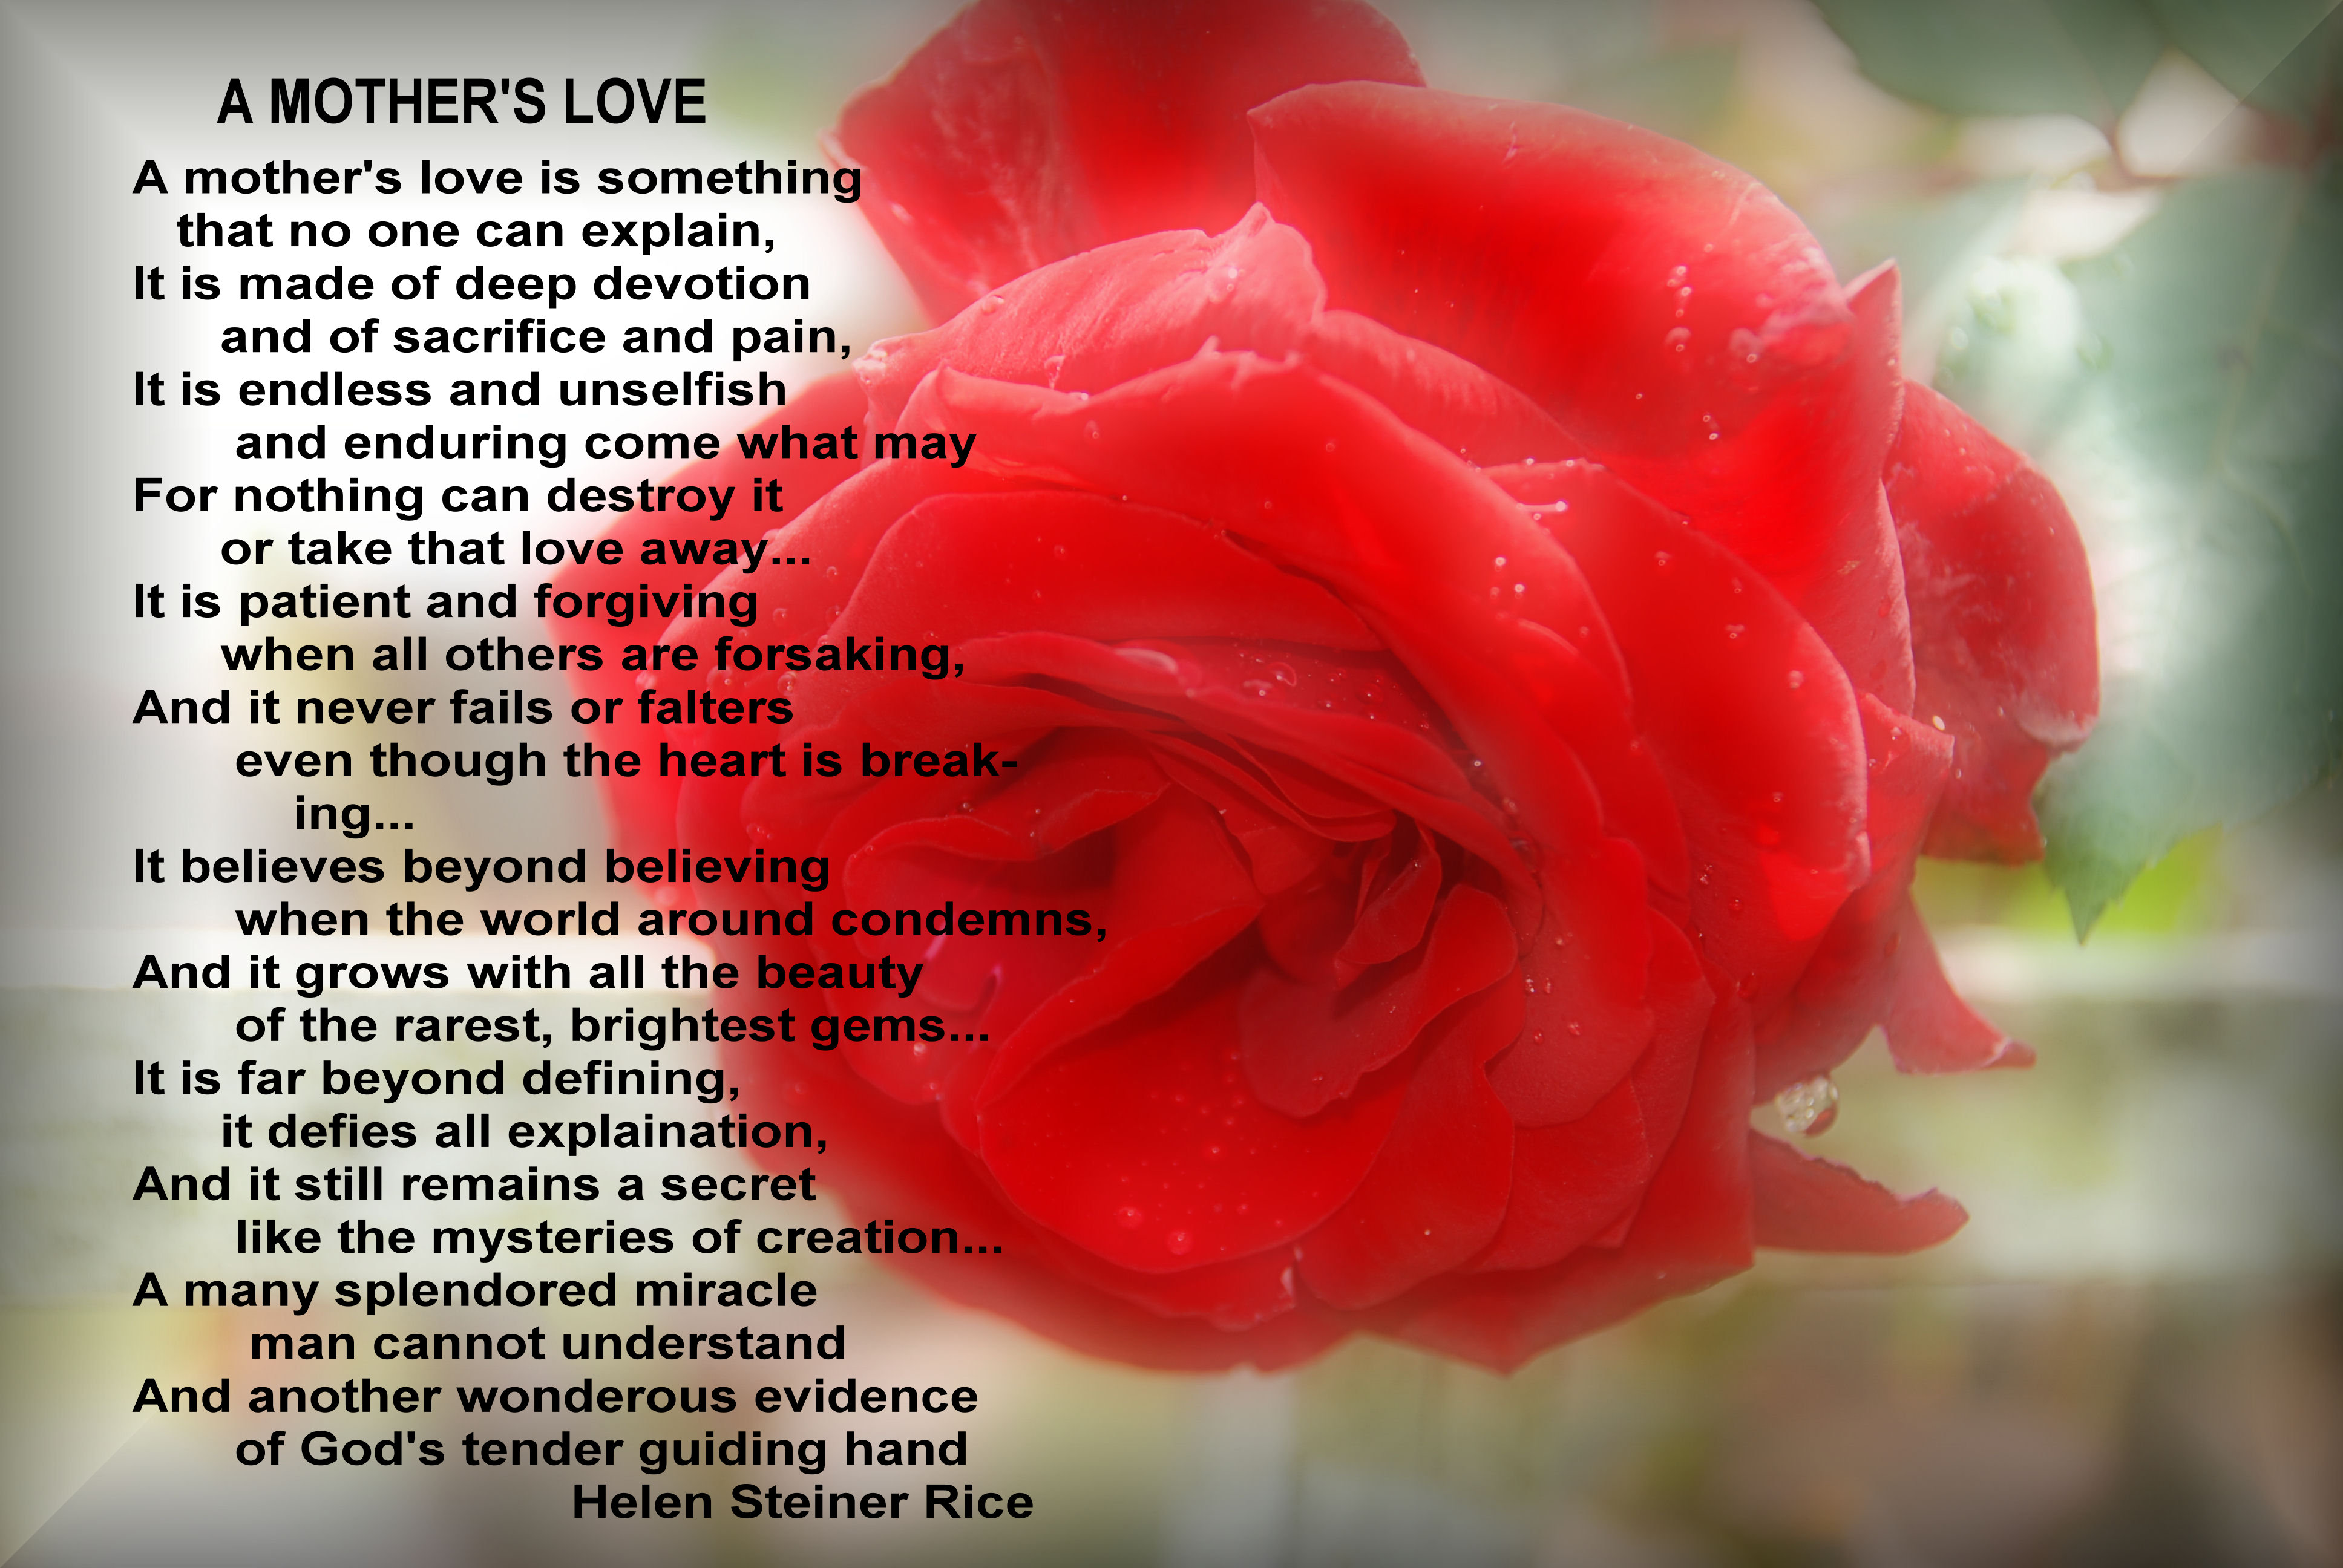 Quotes About A Mother's Love Mothers Day Love Poems